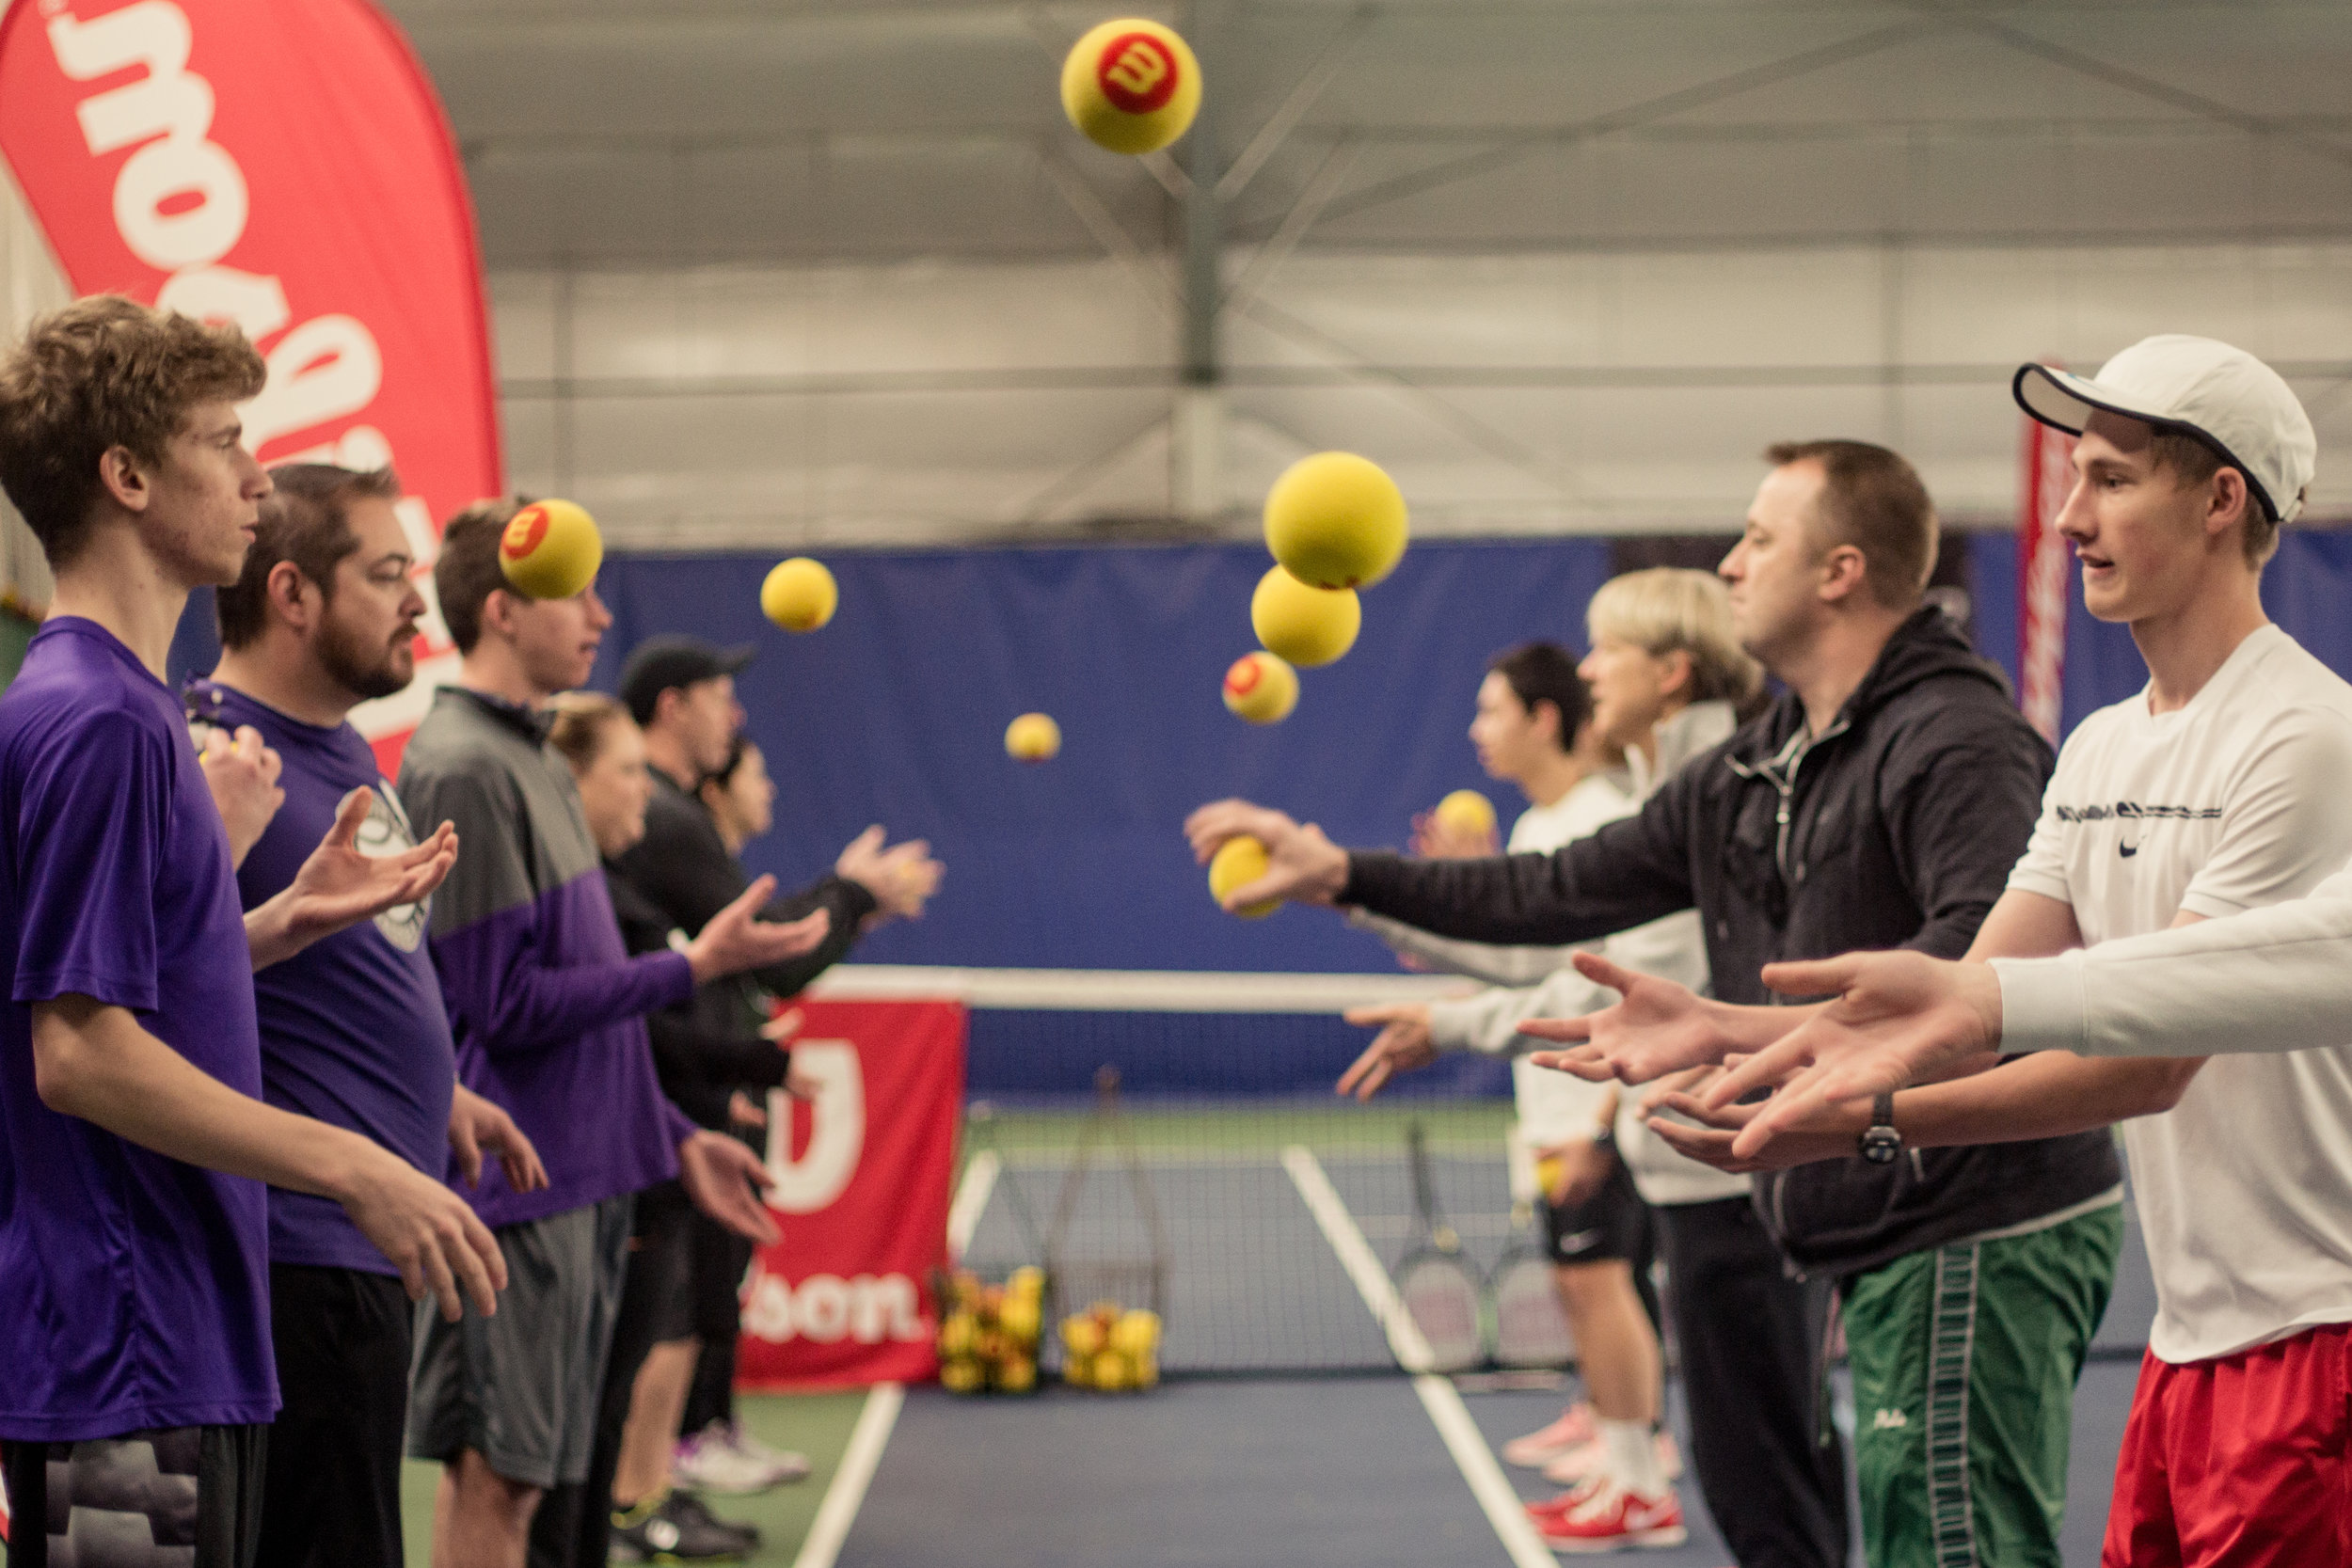 High school tennis - We run coaching clinics and work with tennis coaches from around the region to build on their educational approaches to better mentor the next generation of players.